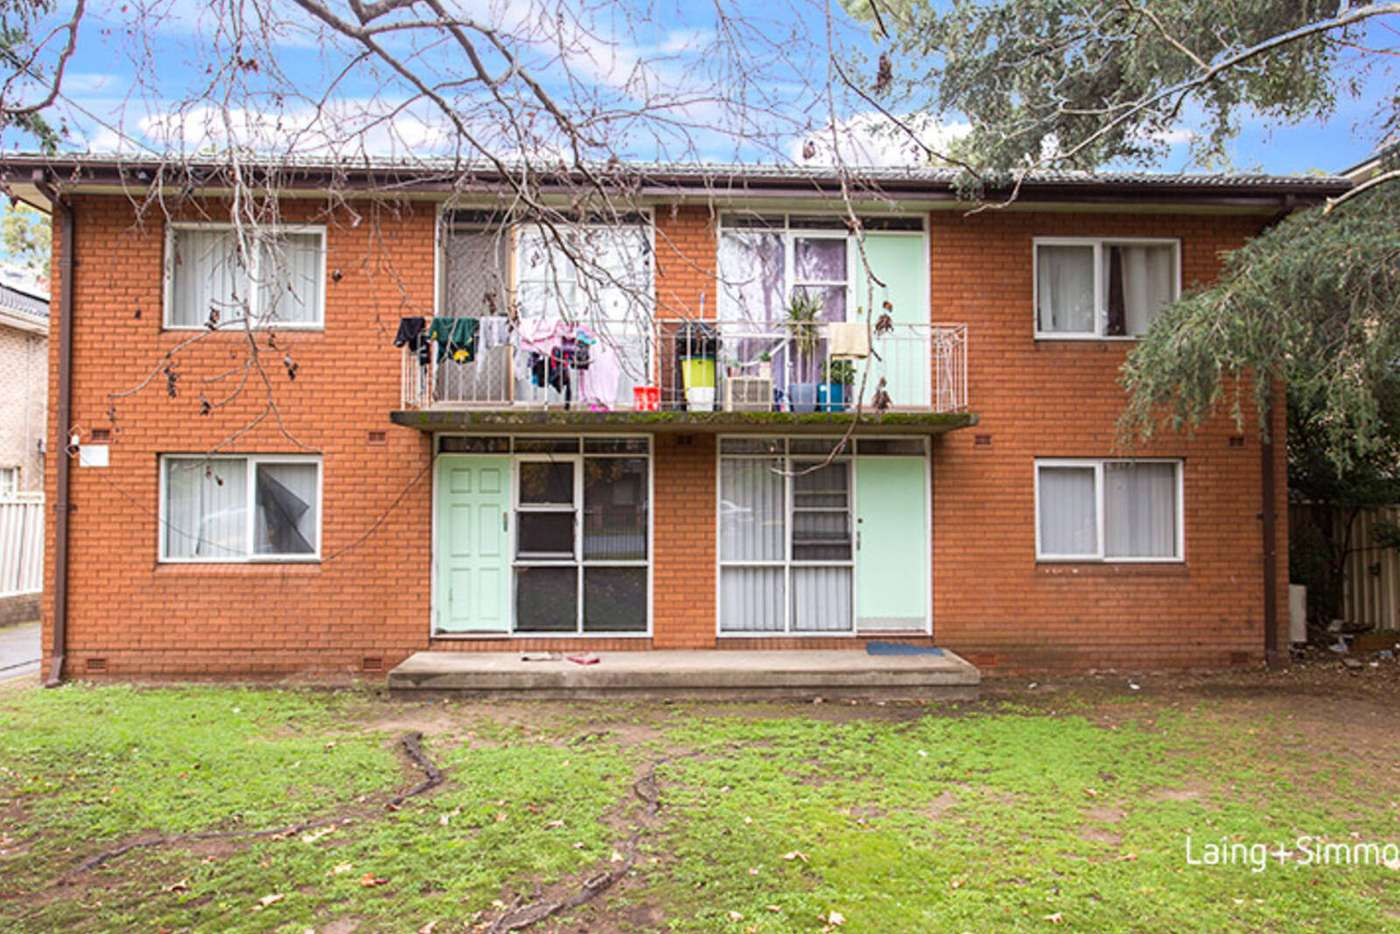 Main view of Homely unit listing, 2/37 Isabella Street, North Parramatta NSW 2151